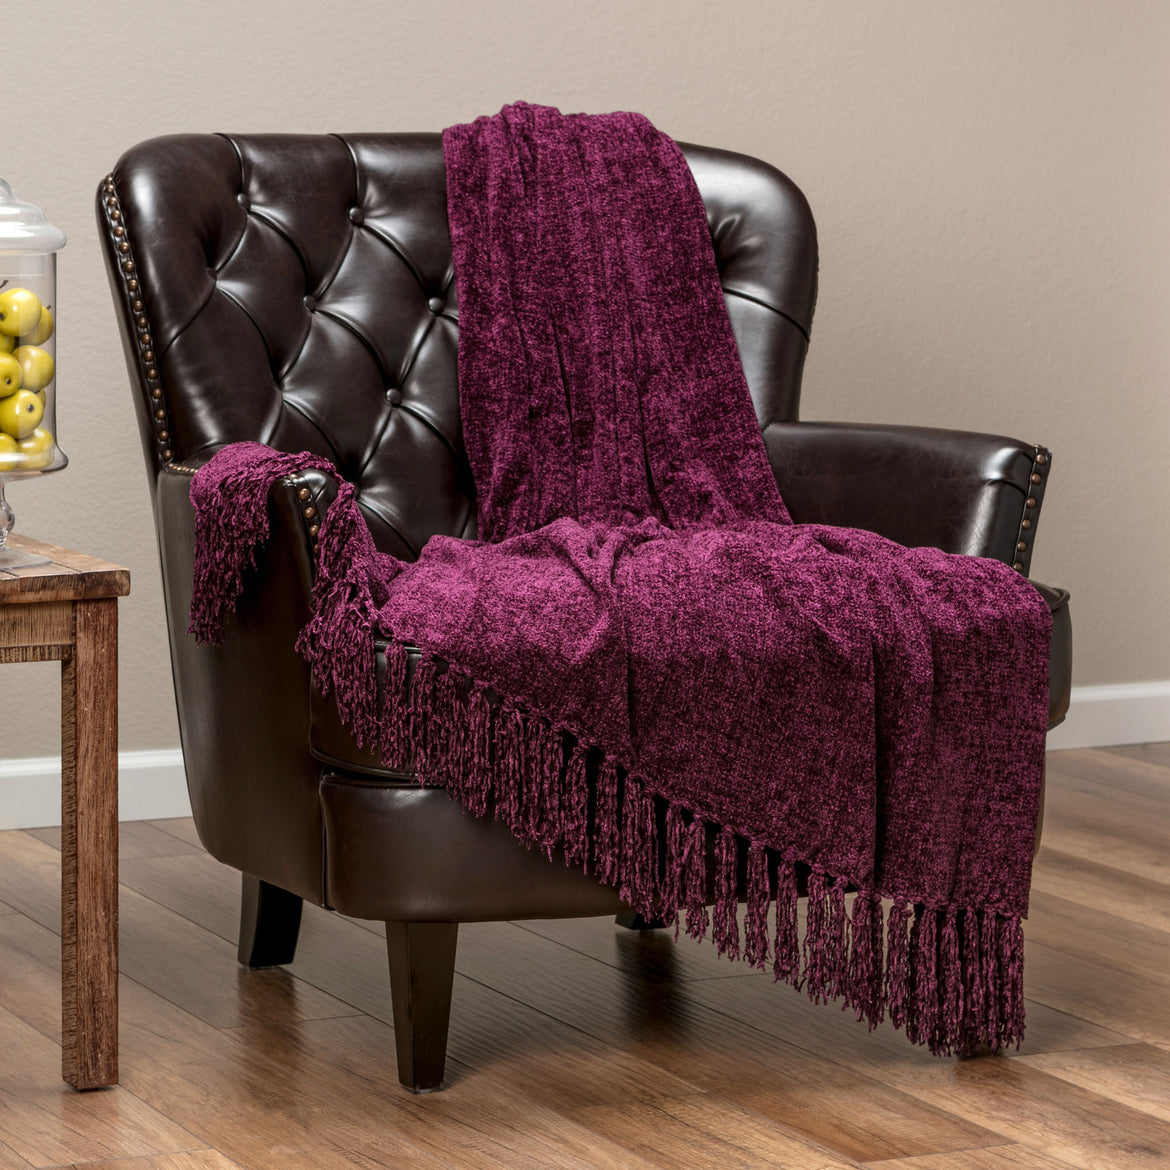 Chenille Aubergine Throw